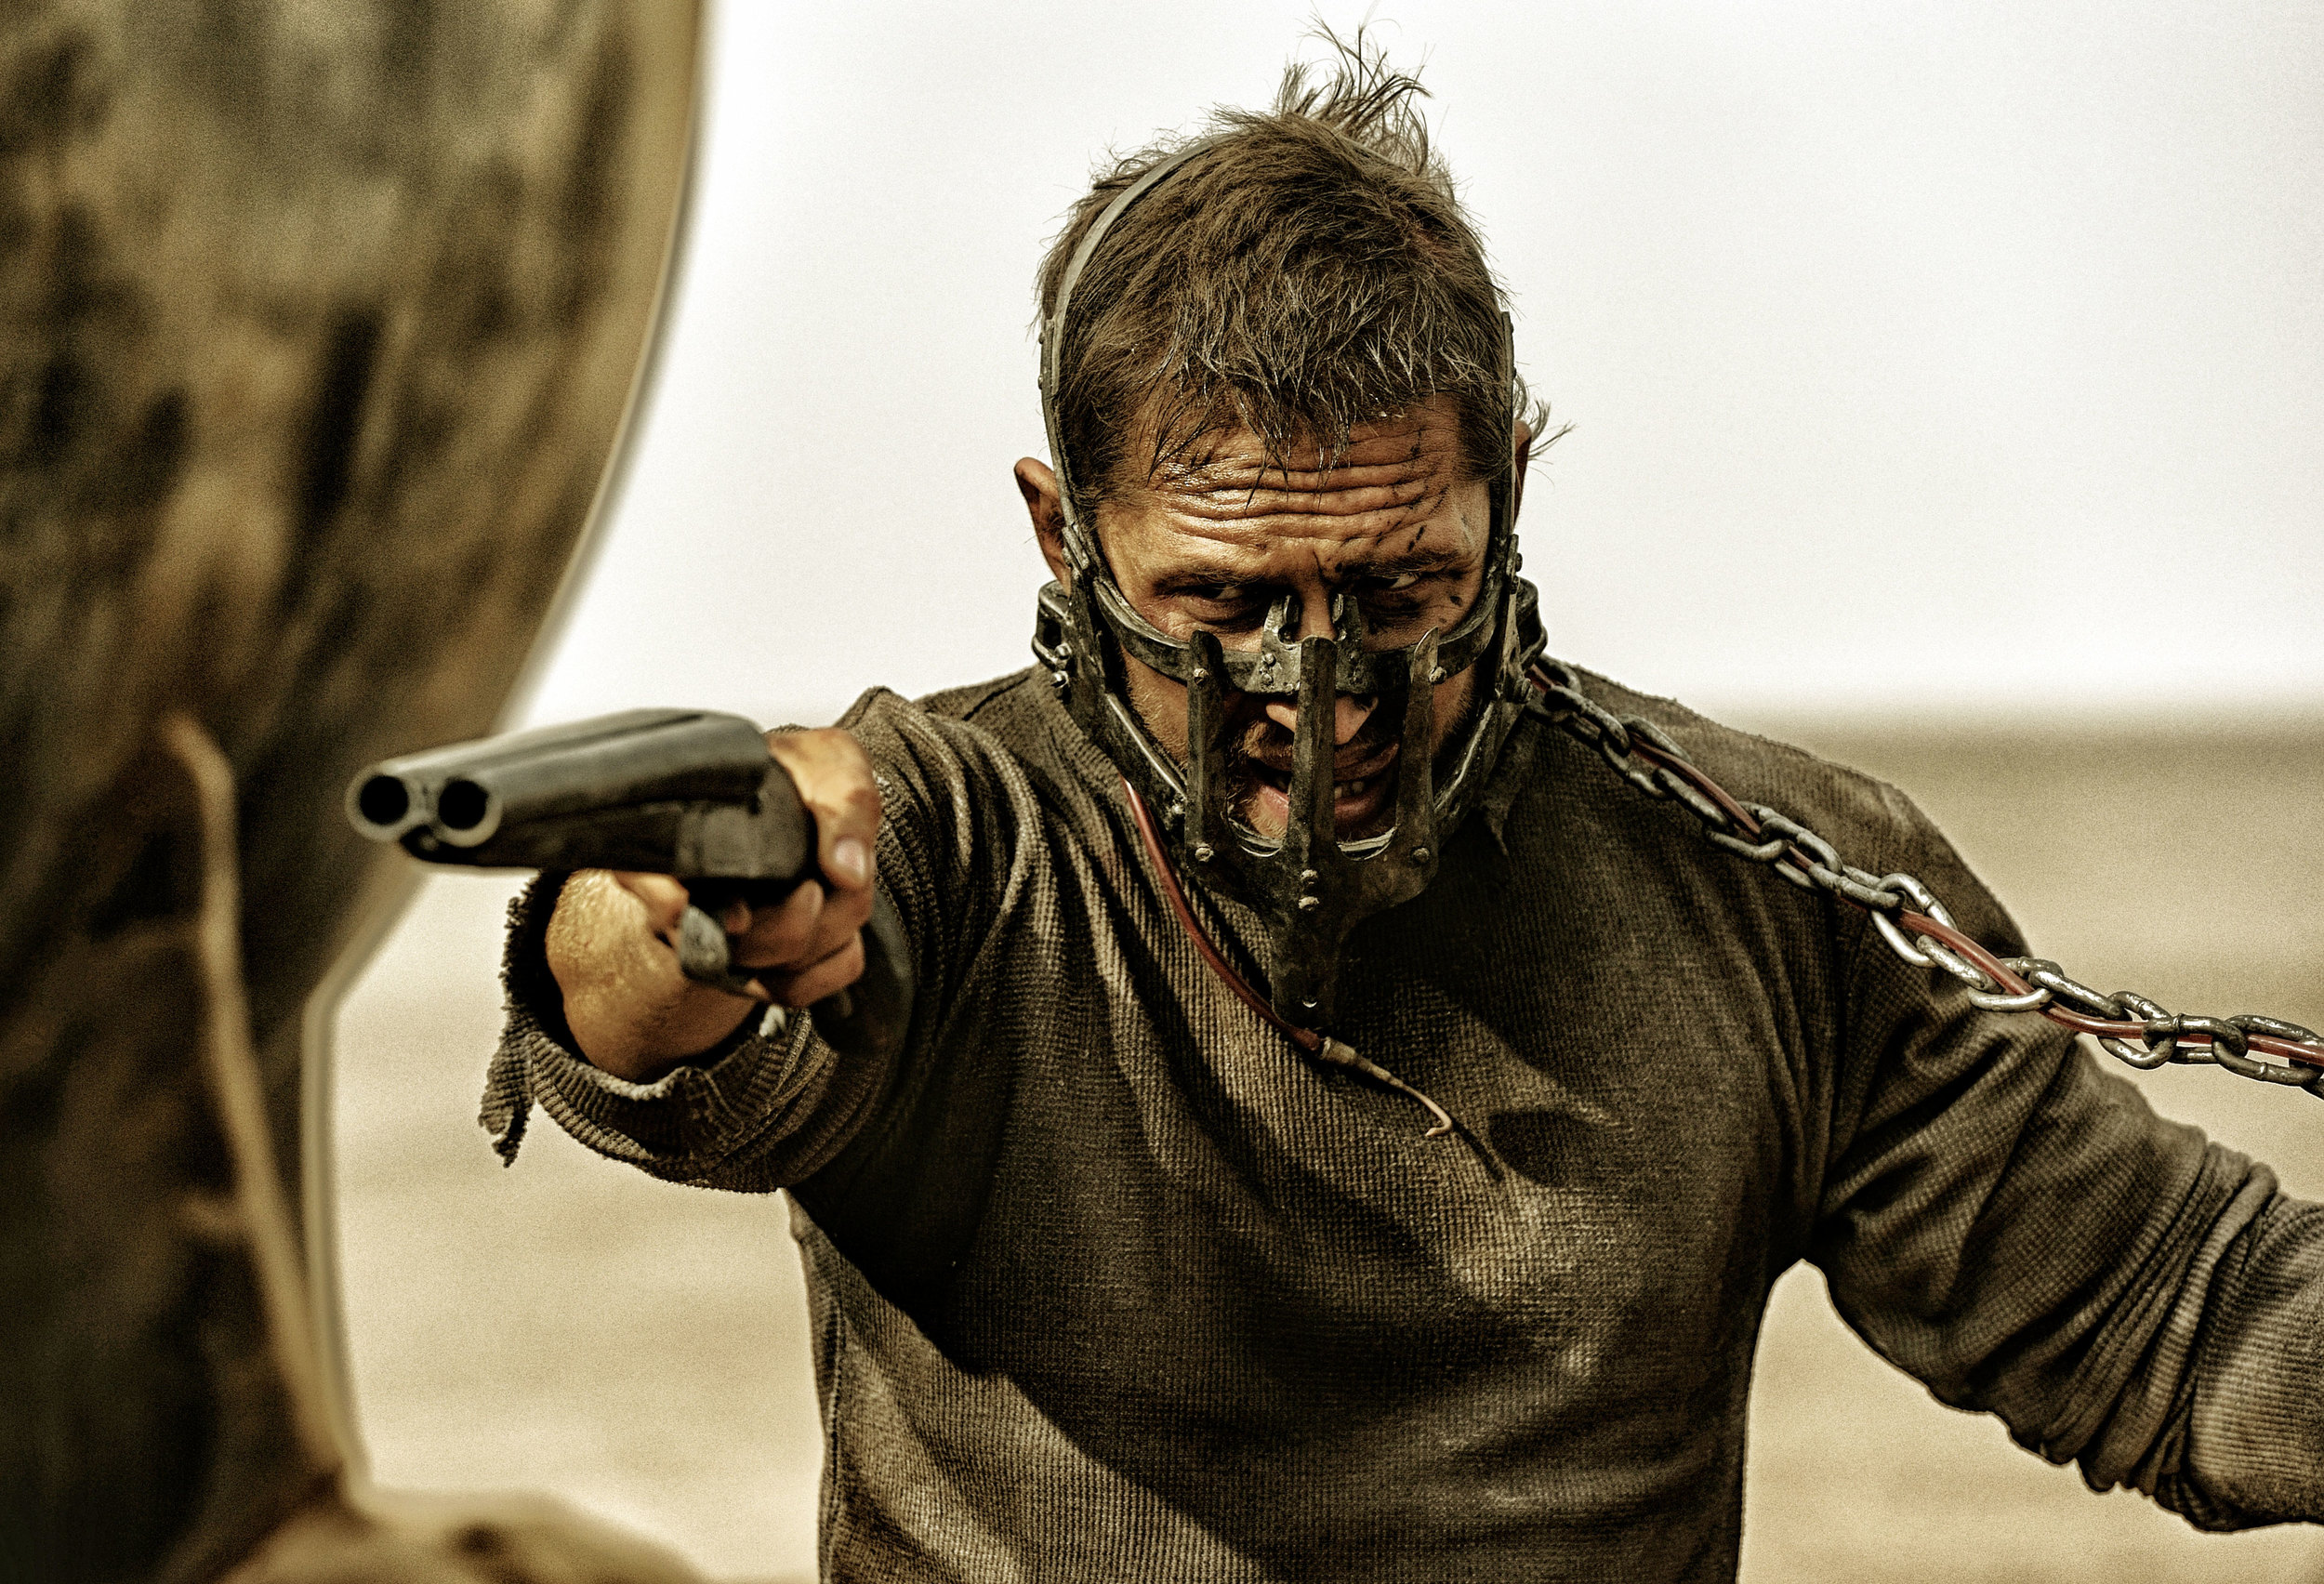 mad-max-fury-road-image-tom-hardy-5.jpg